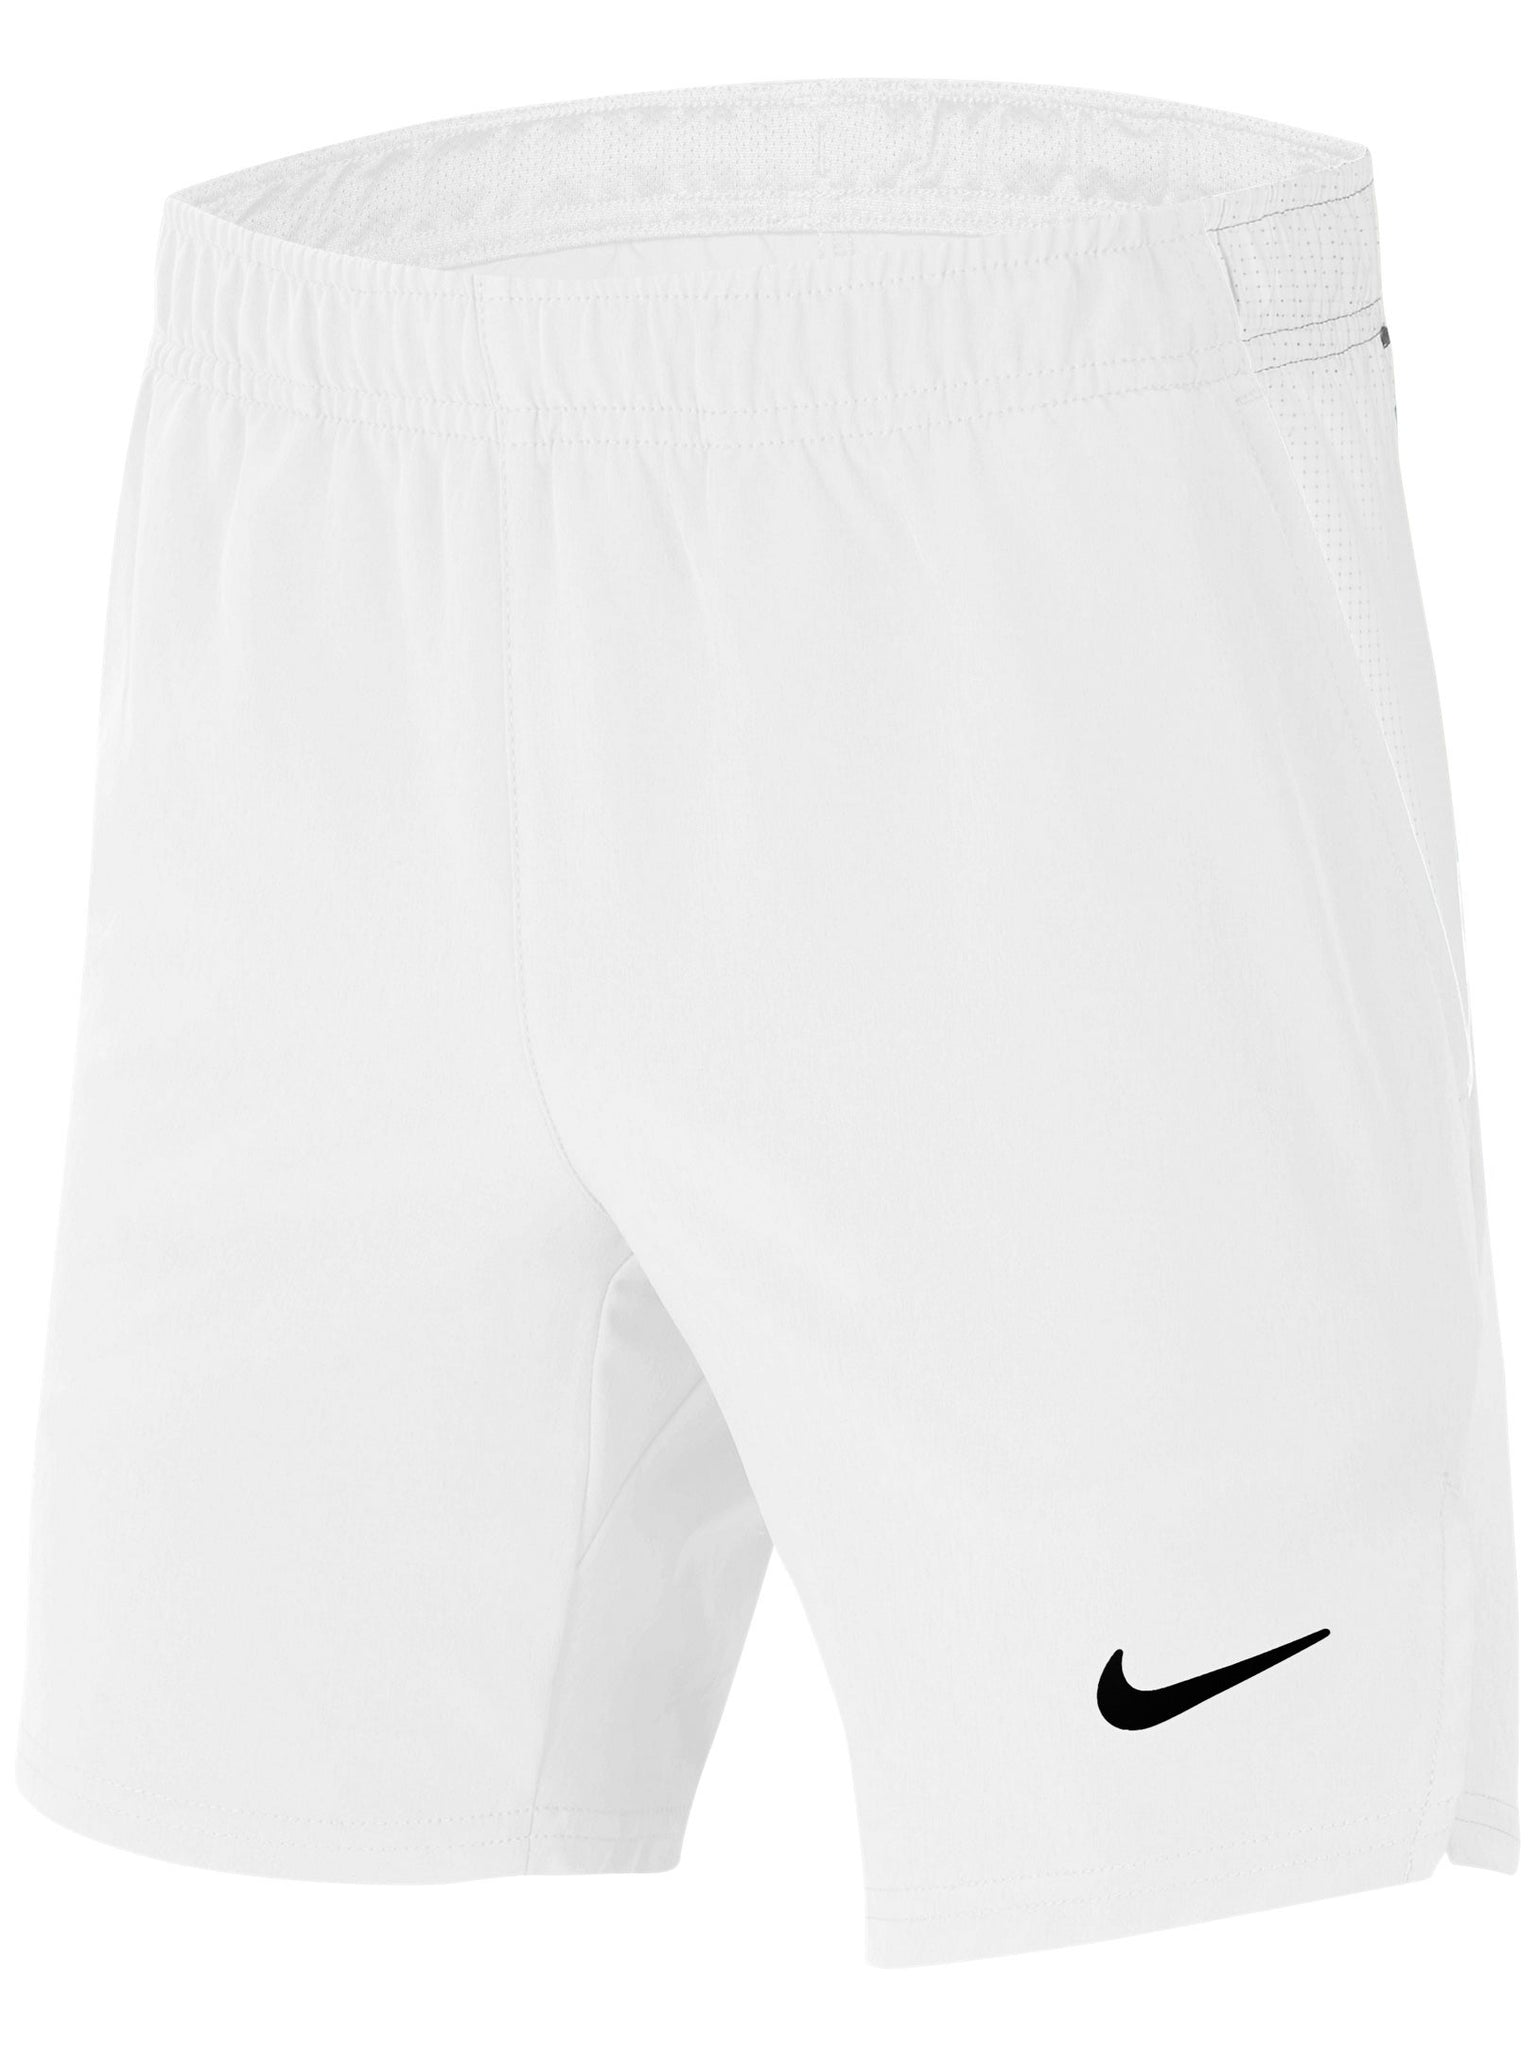 Boy's Nike Tennis Shorts